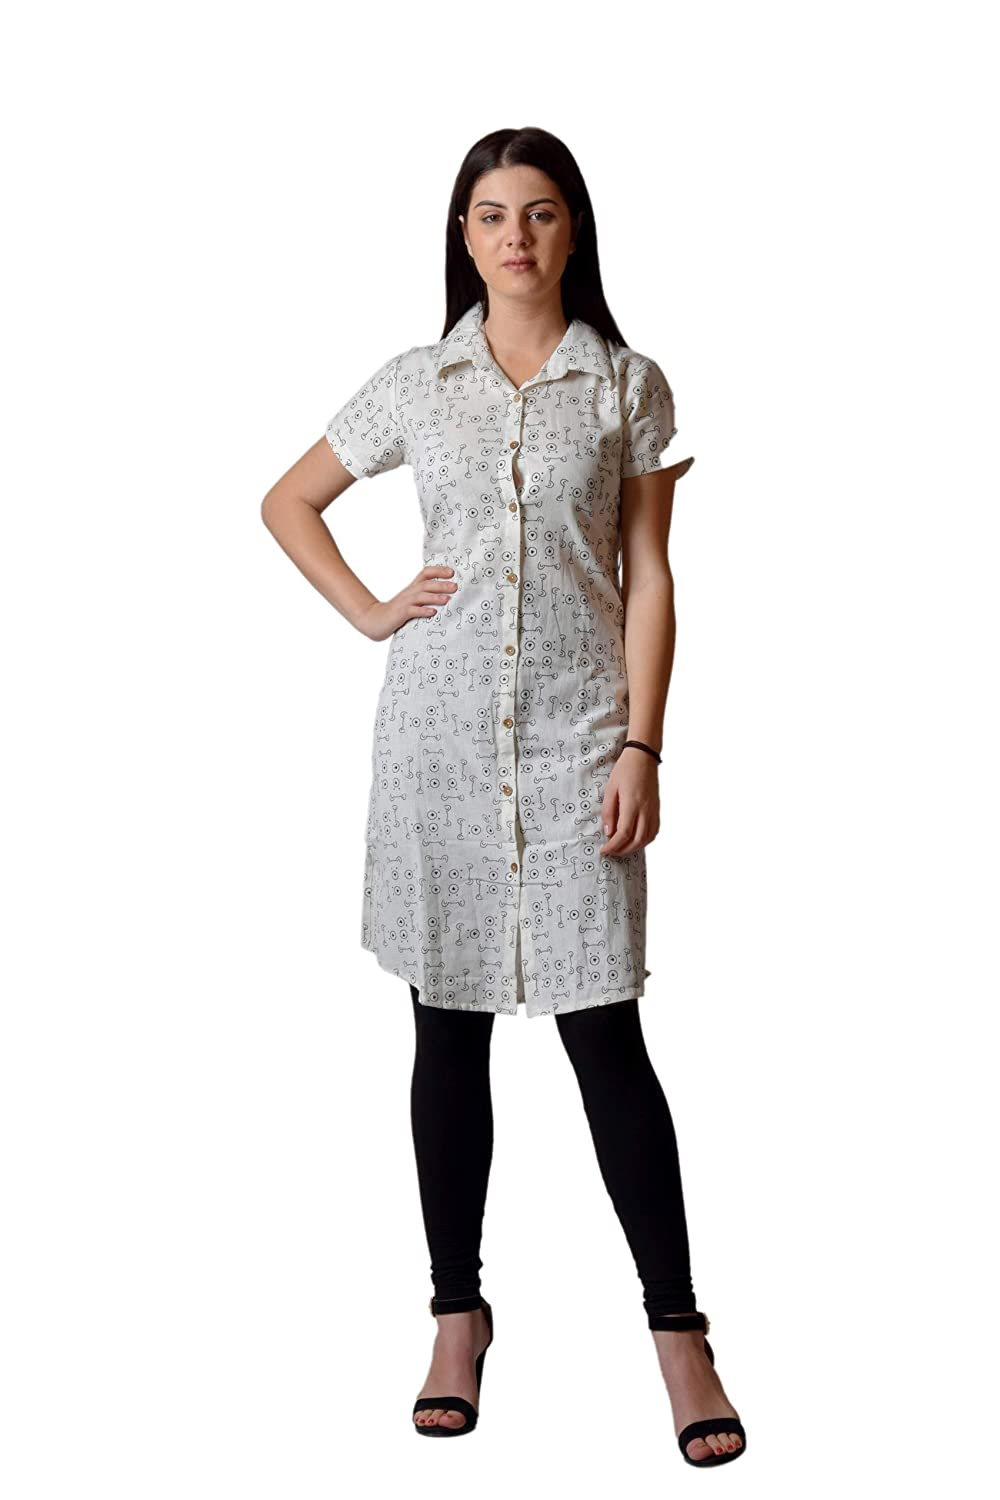 719be63abefe4 AA Trendz Printed Top for Women Girls Western wear Tunic Top for Jeans